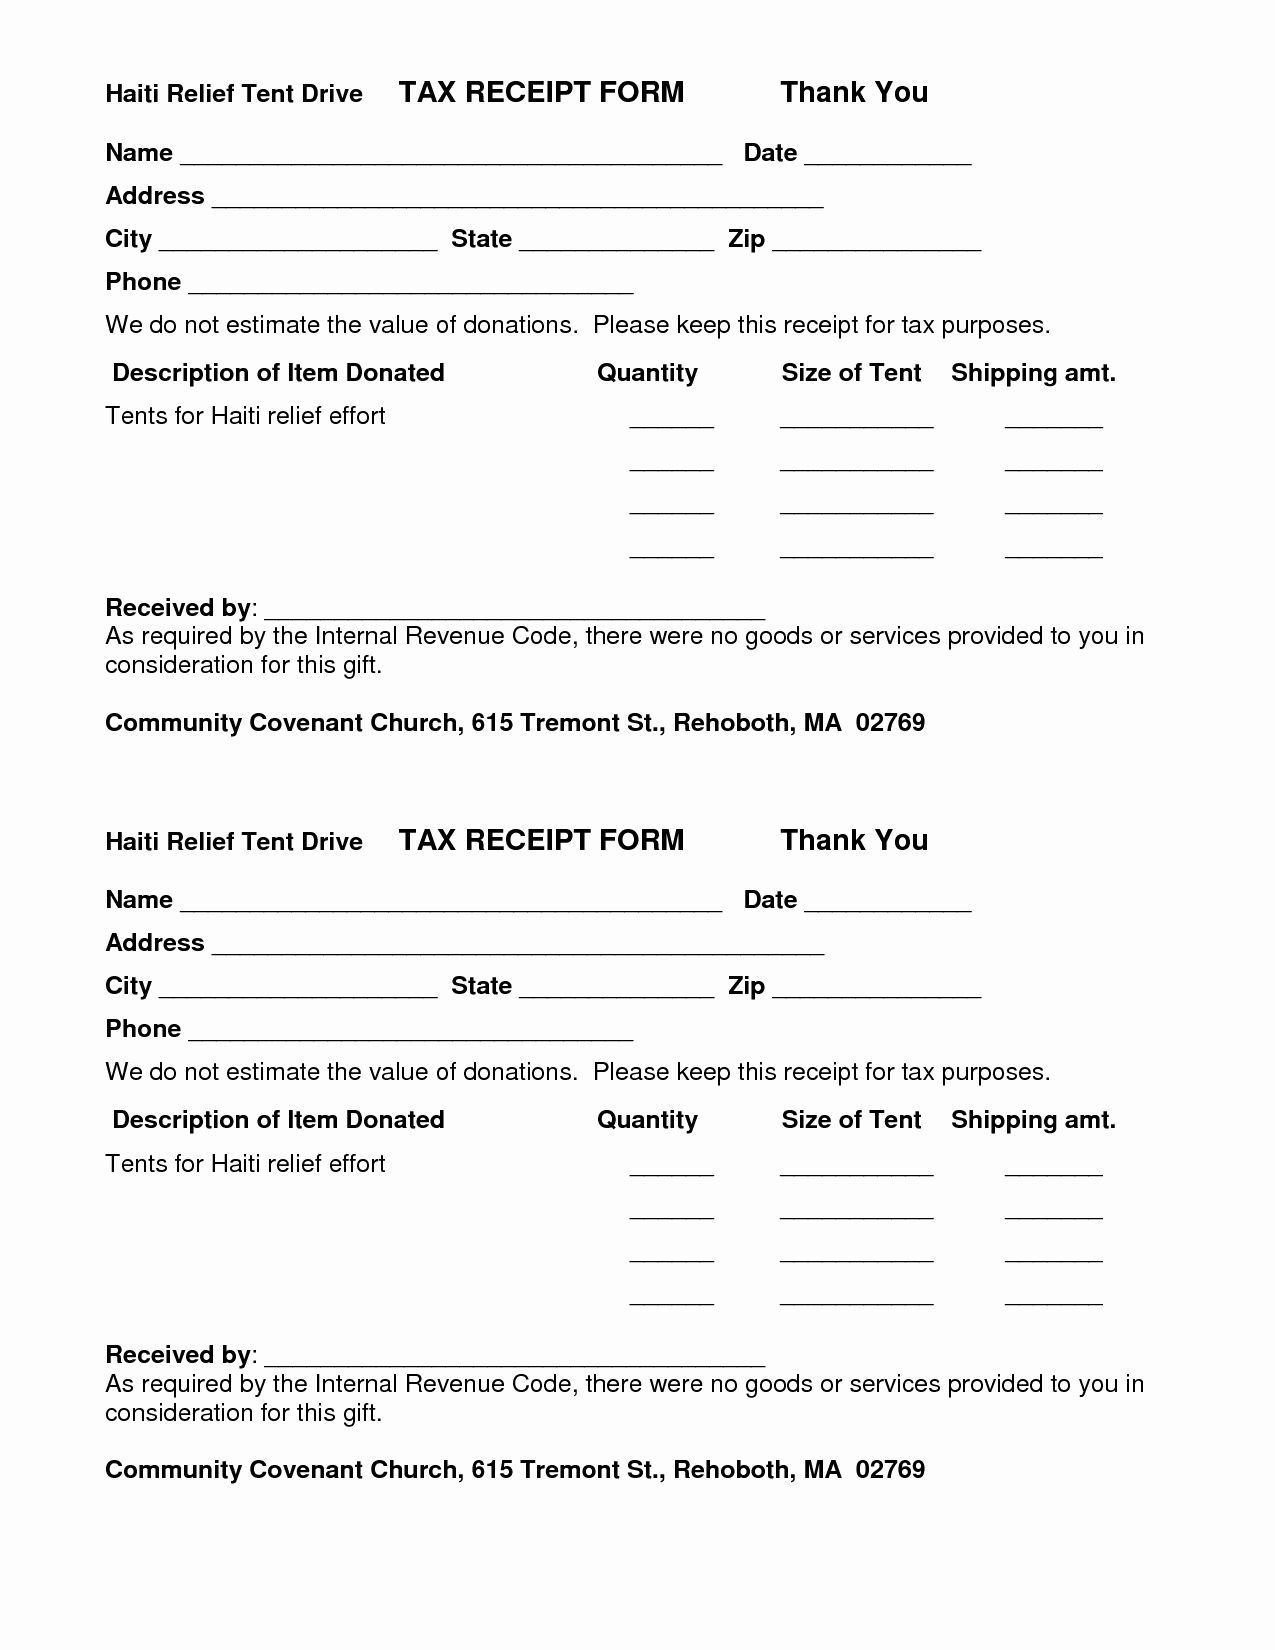 Donation Form For Tax Purposes New Lovely Donation Receipt Letter For Tax Purposes In 2020 Resume Template Donation Form Business Letter Template